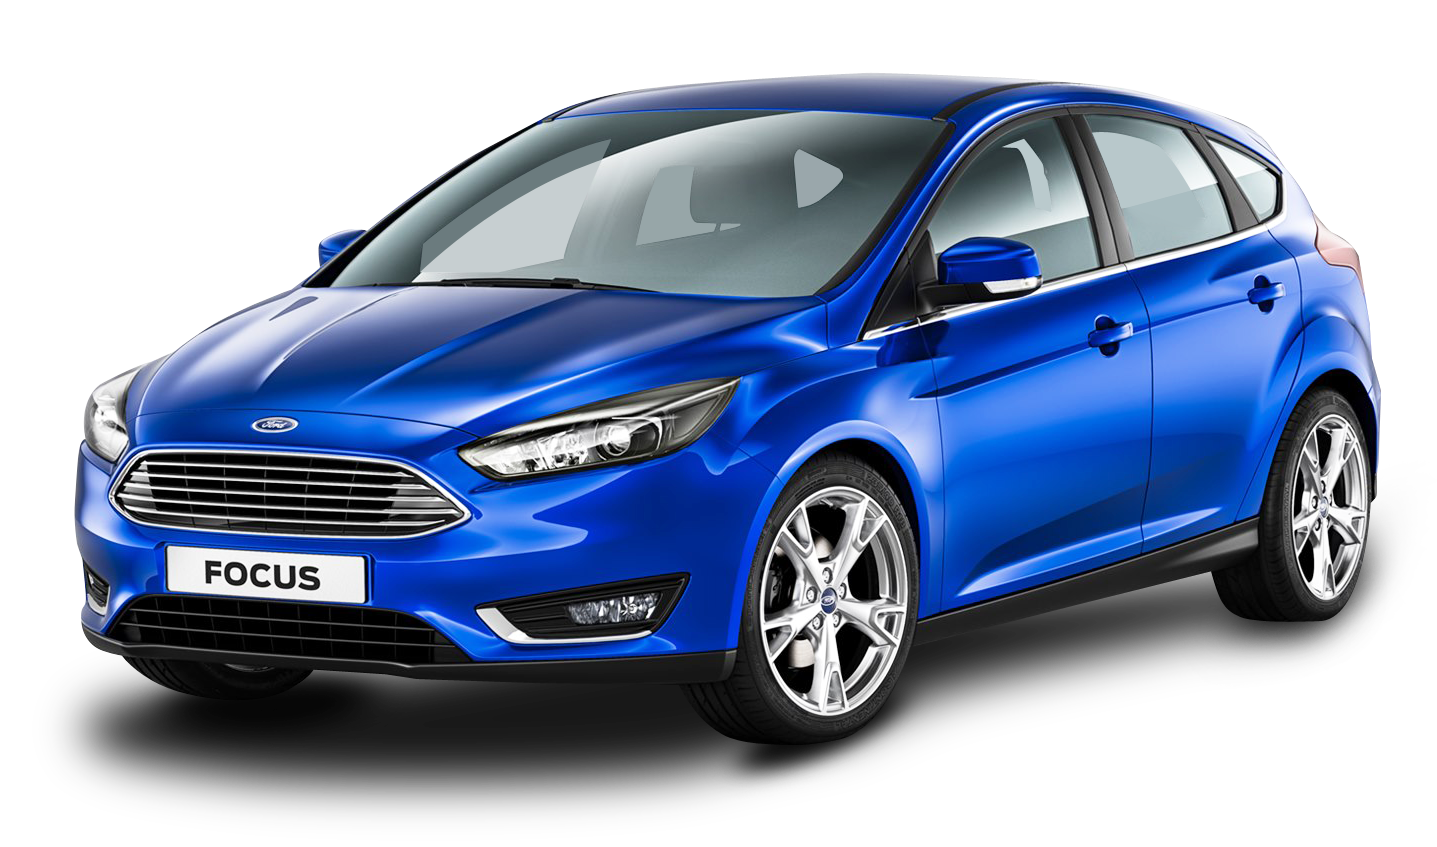 Car clipart transparent background picture royalty free Blue Ford Focus Car PNG Image - PurePNG | Free transparent CC0 PNG ... picture royalty free